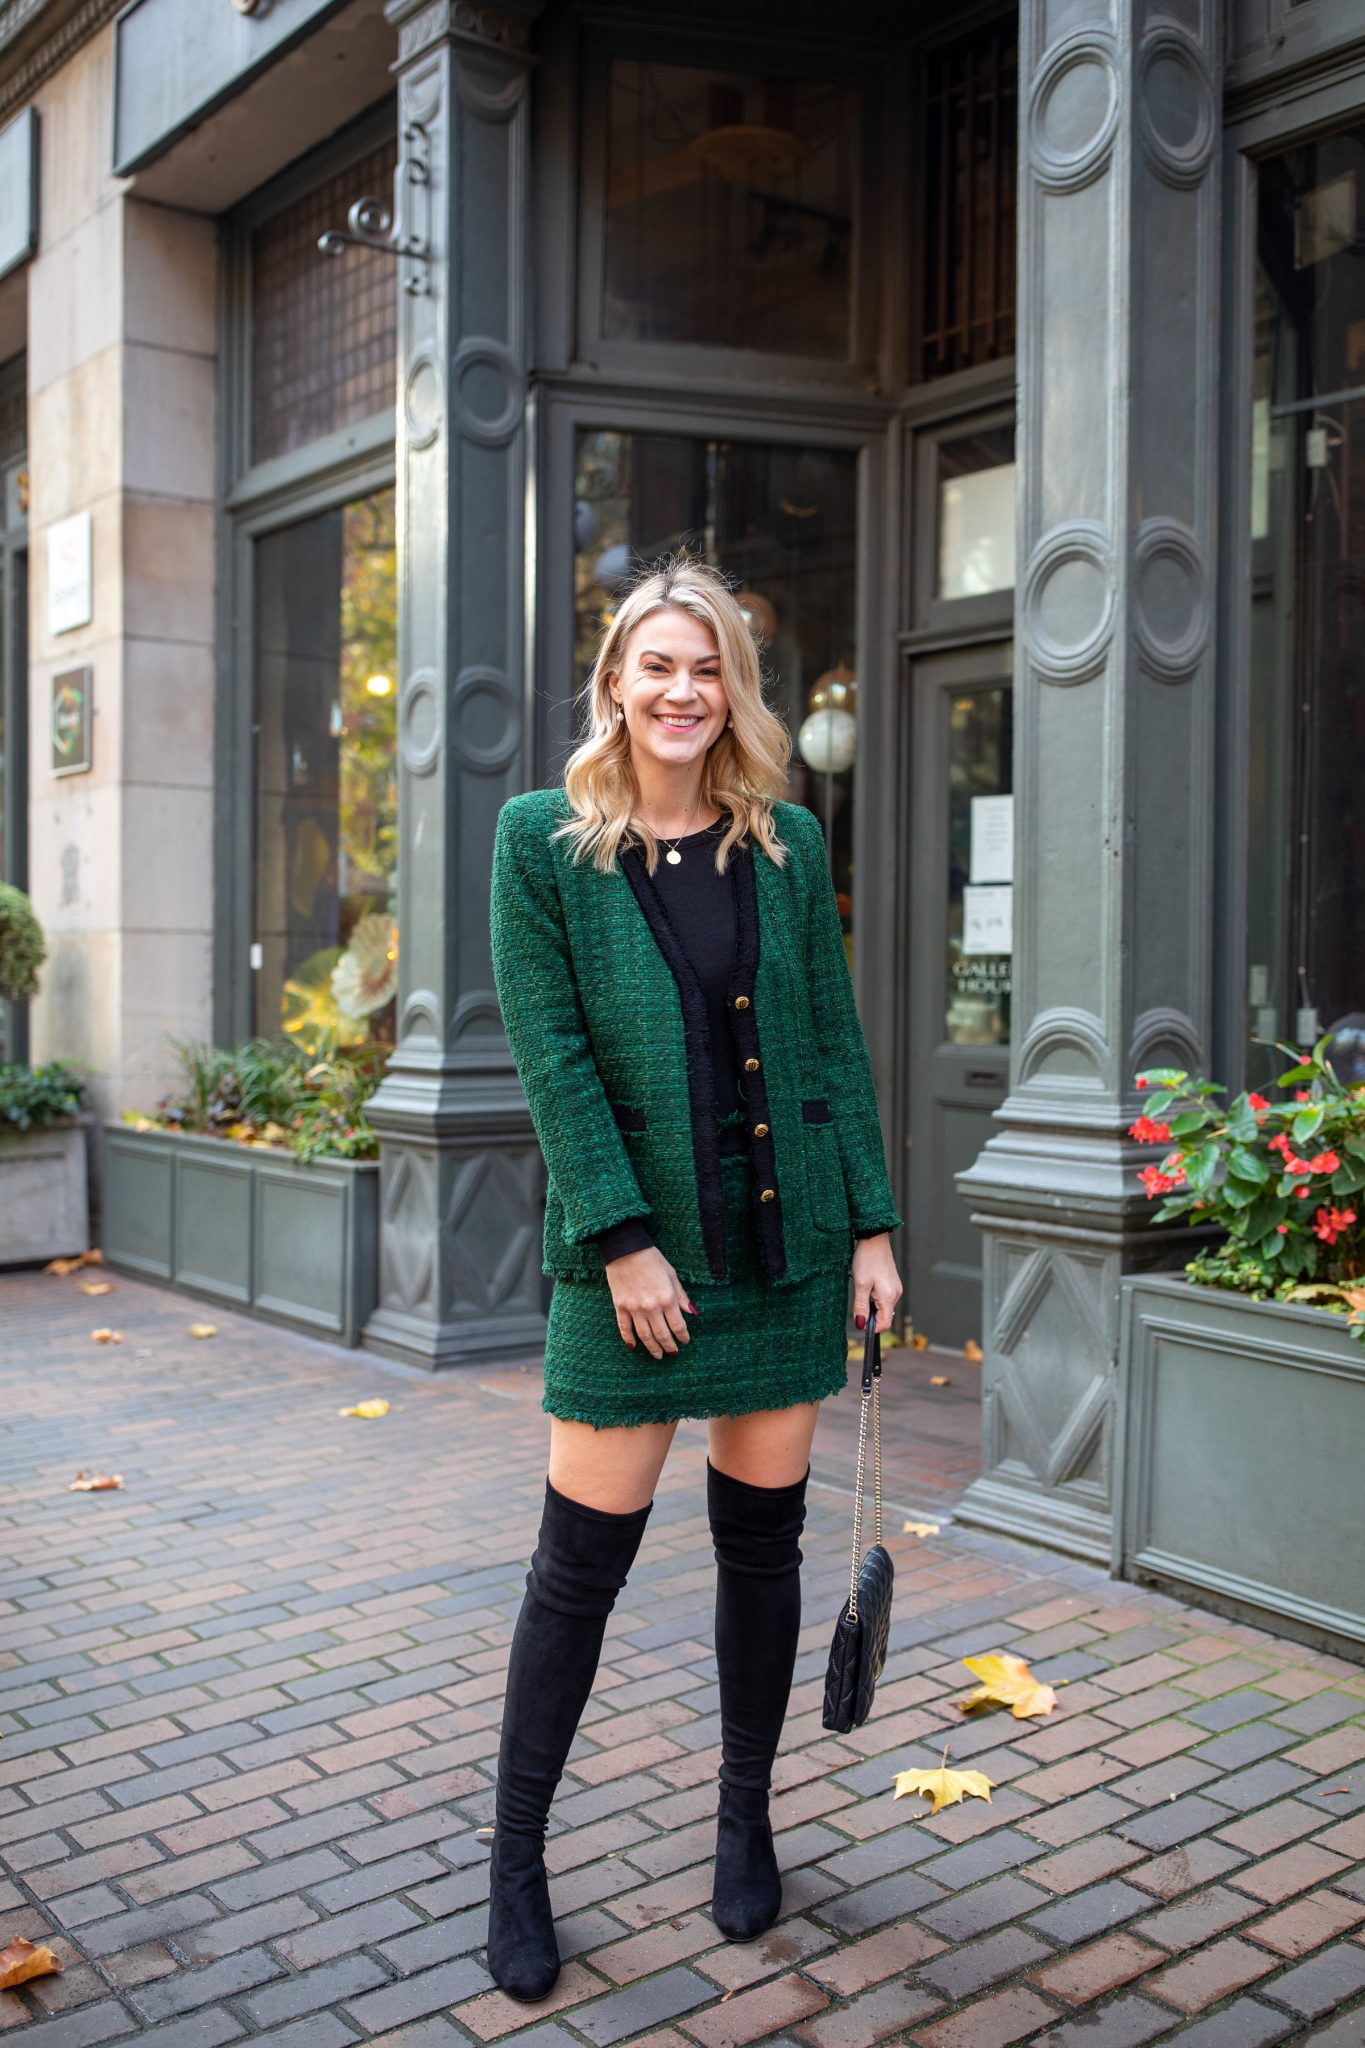 Tweed Suit by popular Seattle tall fashion blog, Whit Wanders: image of a woman standing outside and wearing a Zara green tweed suit and black over the knee boots.